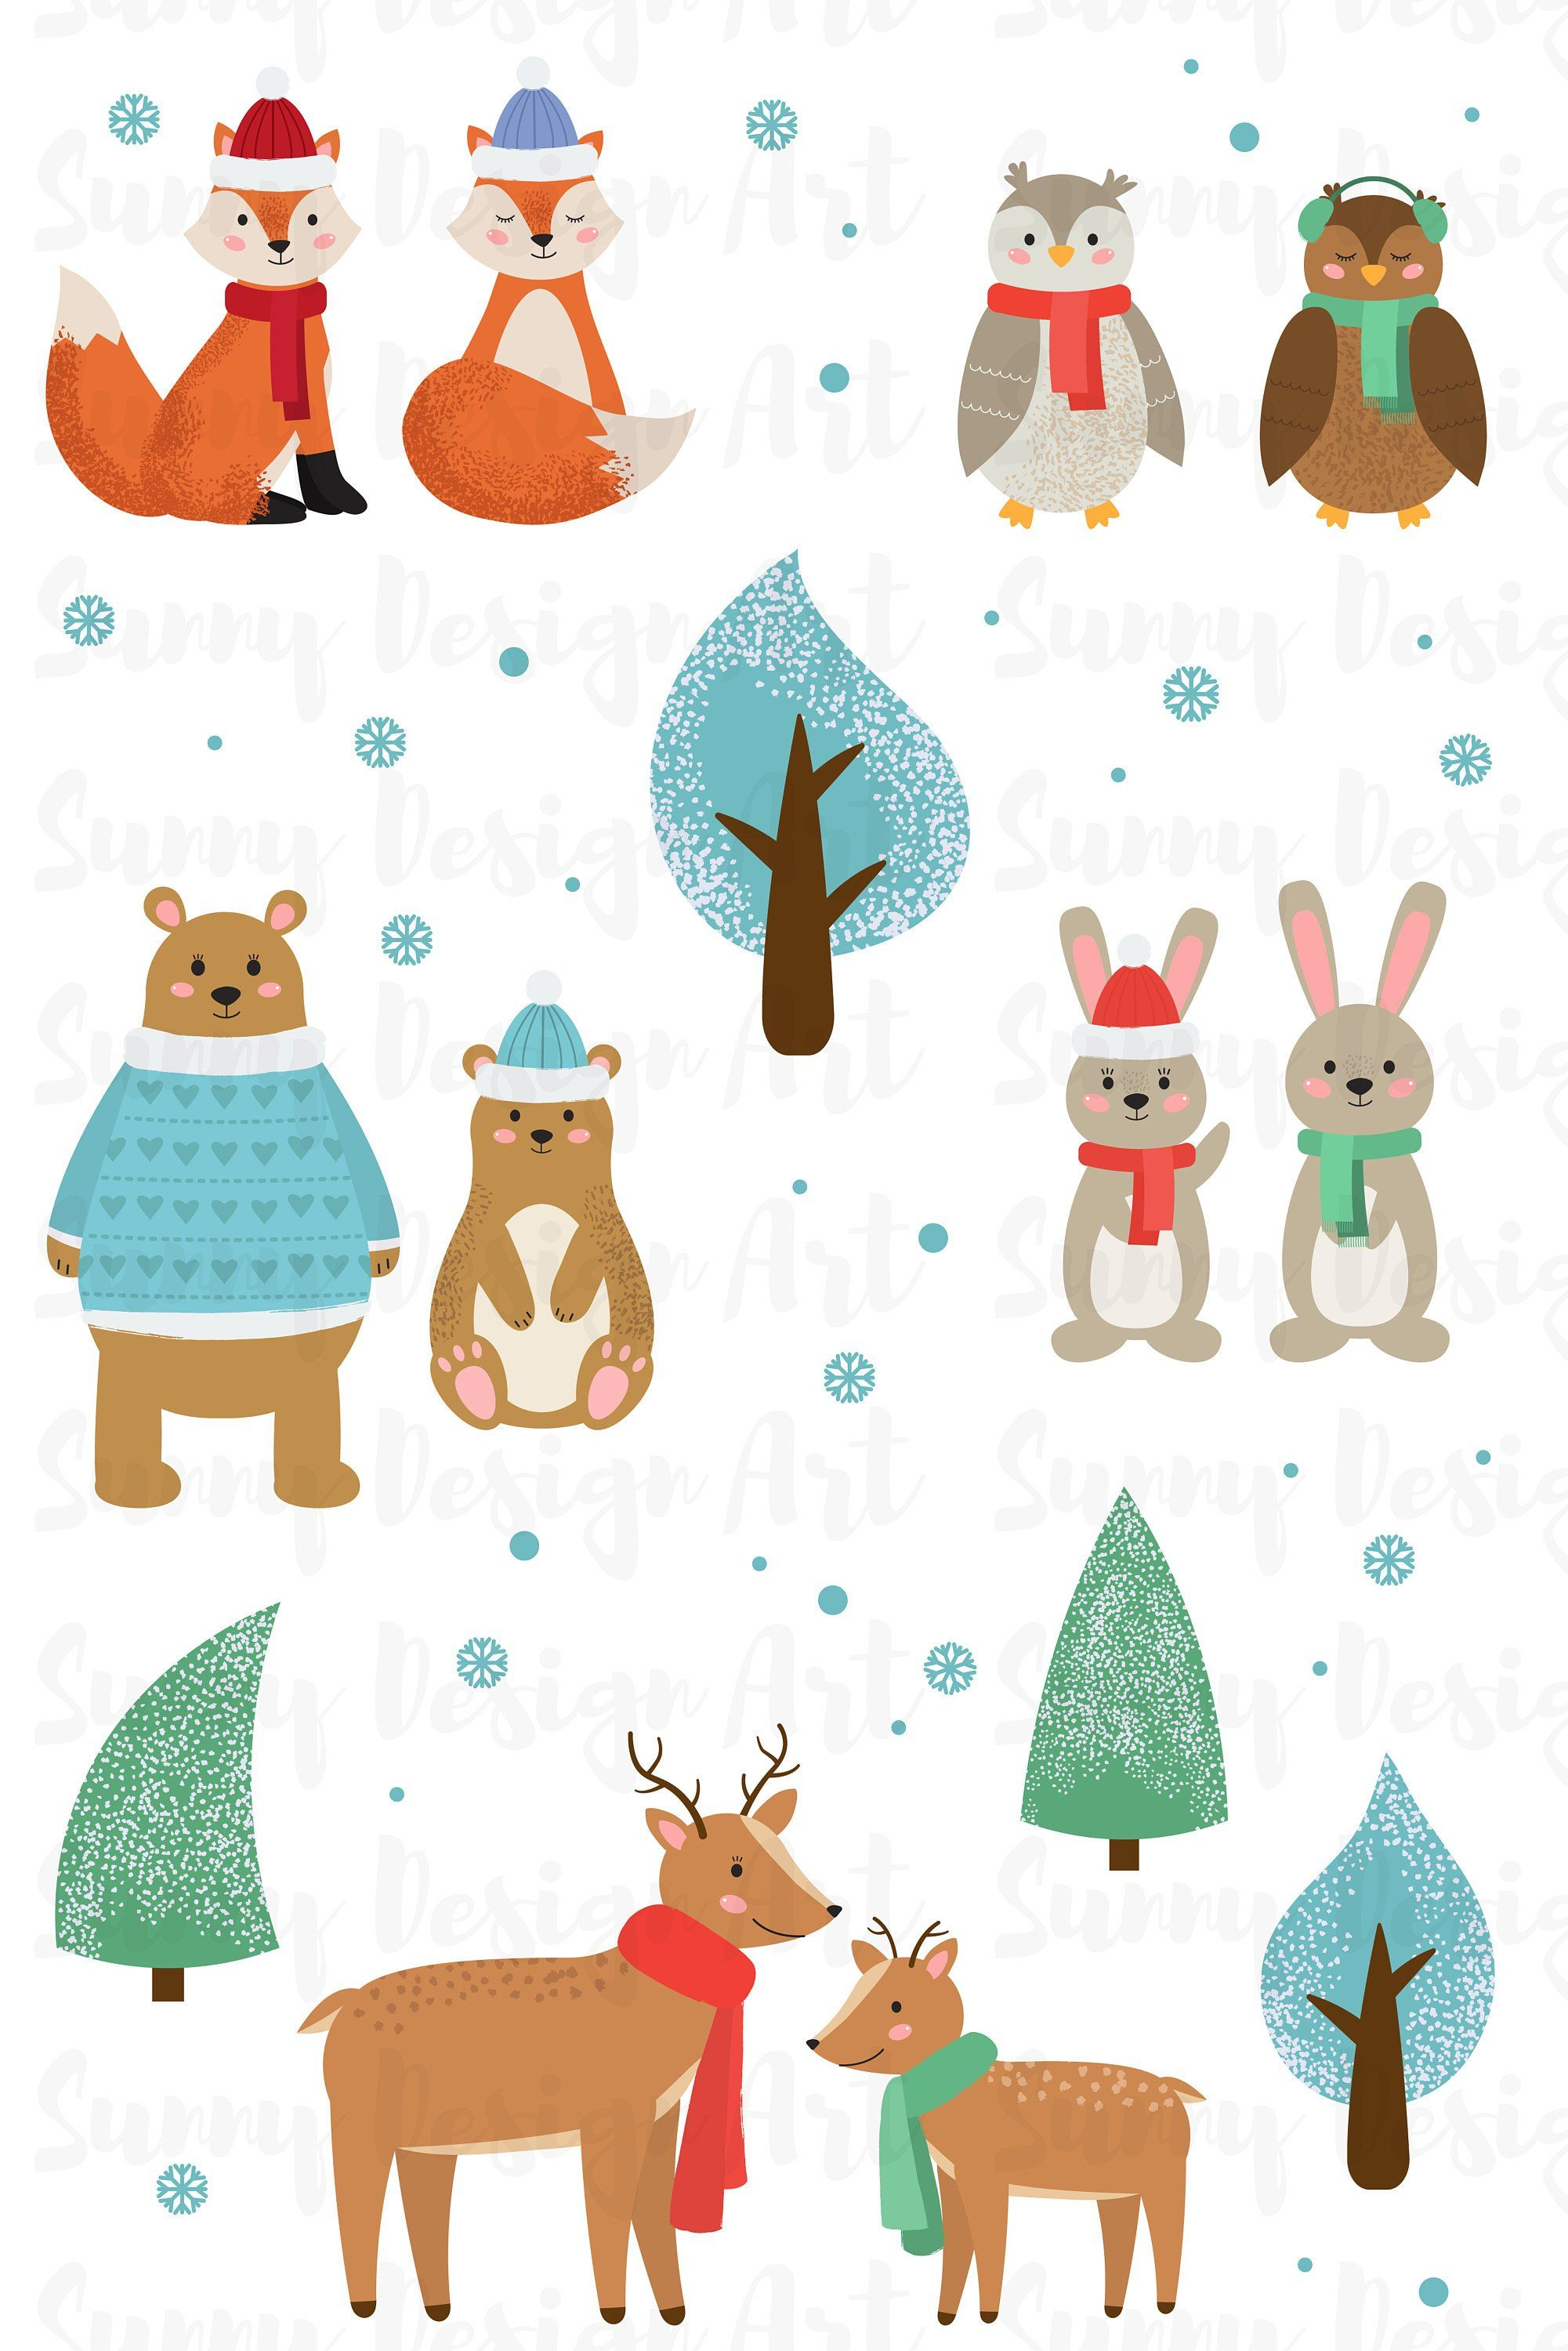 Winter Animals Clipart Cute Forest Animals Vector Woodland Clipart Christmas Animals Vector Holiday Animal Clip Art Instant Download Christmas Animals Animal Clipart Winter Animals